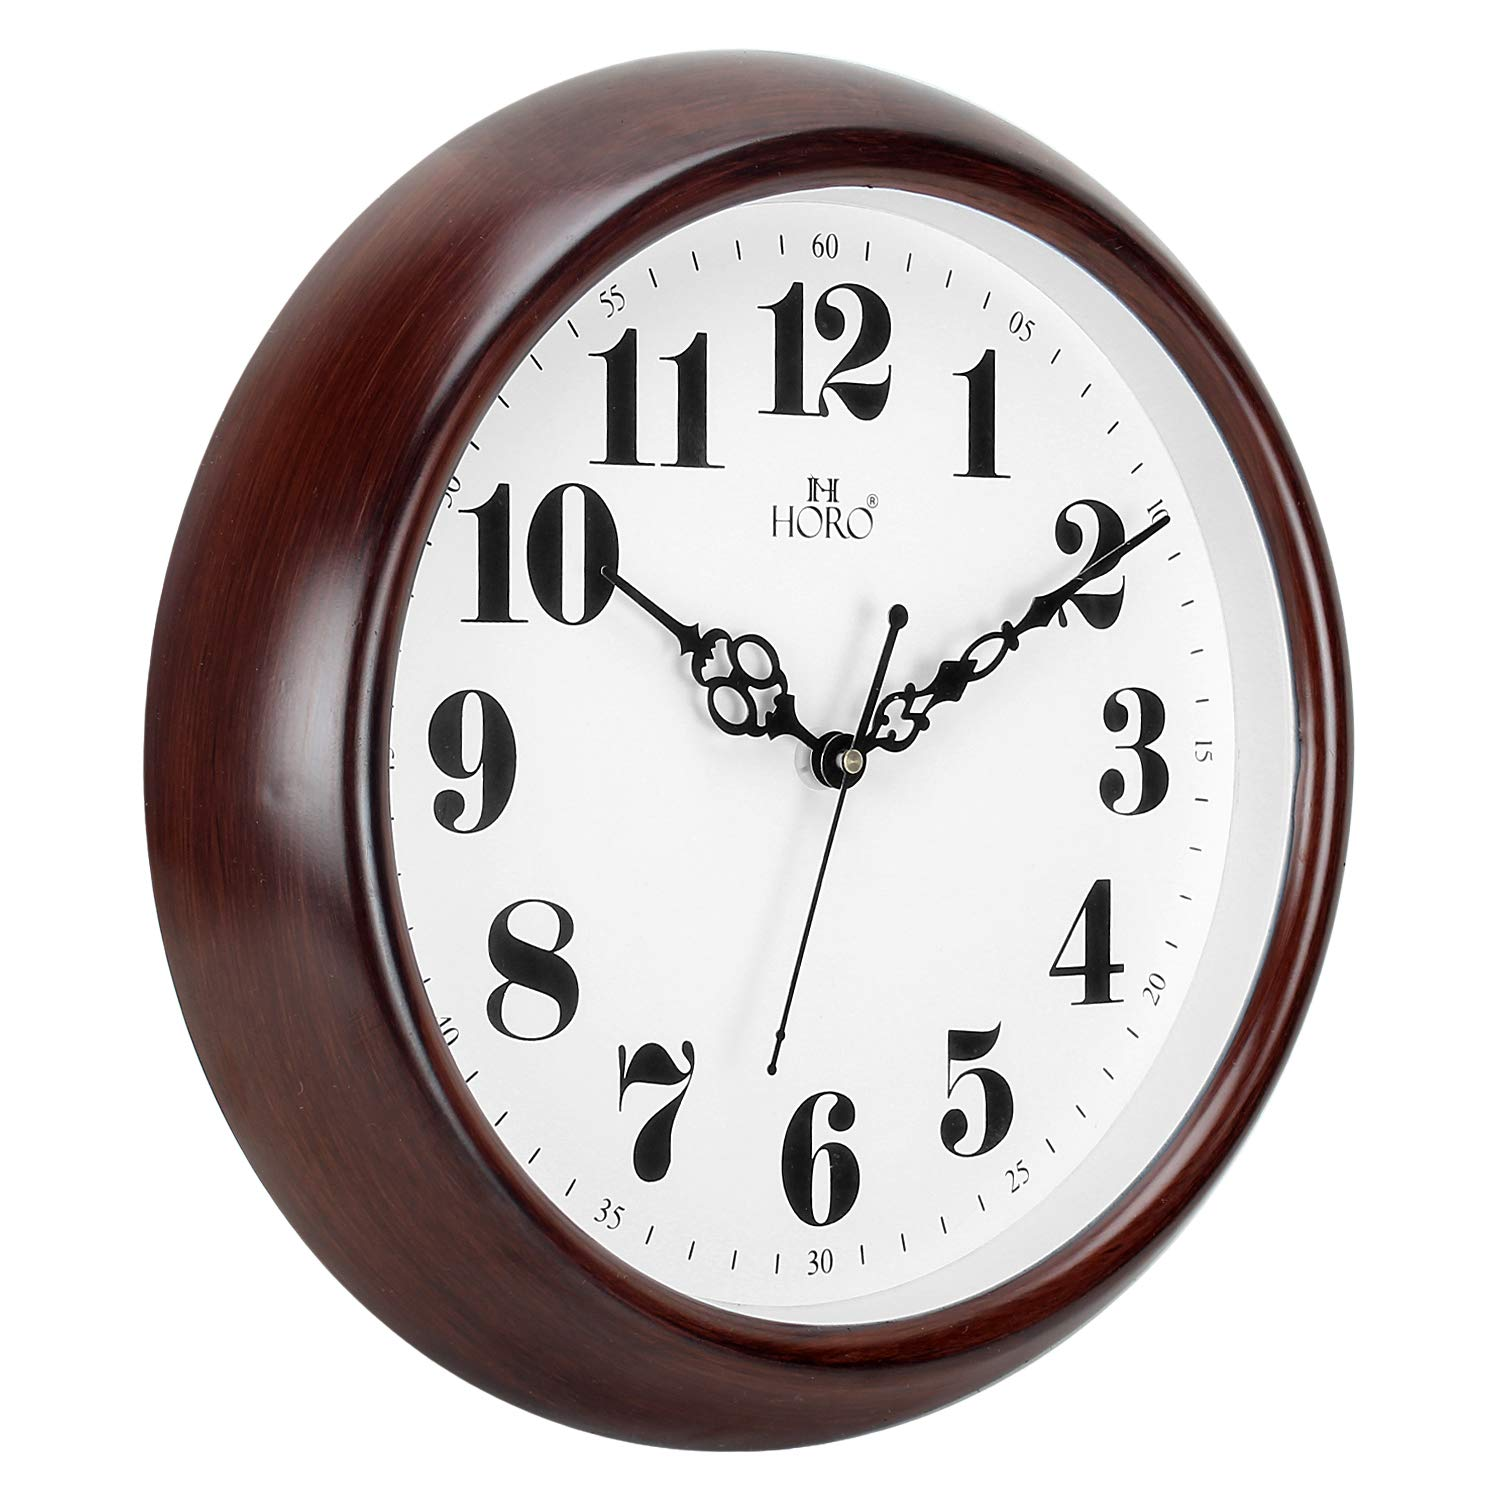 Horo (Imported) Plastic DEEP Brown Round Clock Step Movt  Number  Dial/Crystal Glass DEEP Brown Case/Plastic Case Analogue ⌀12